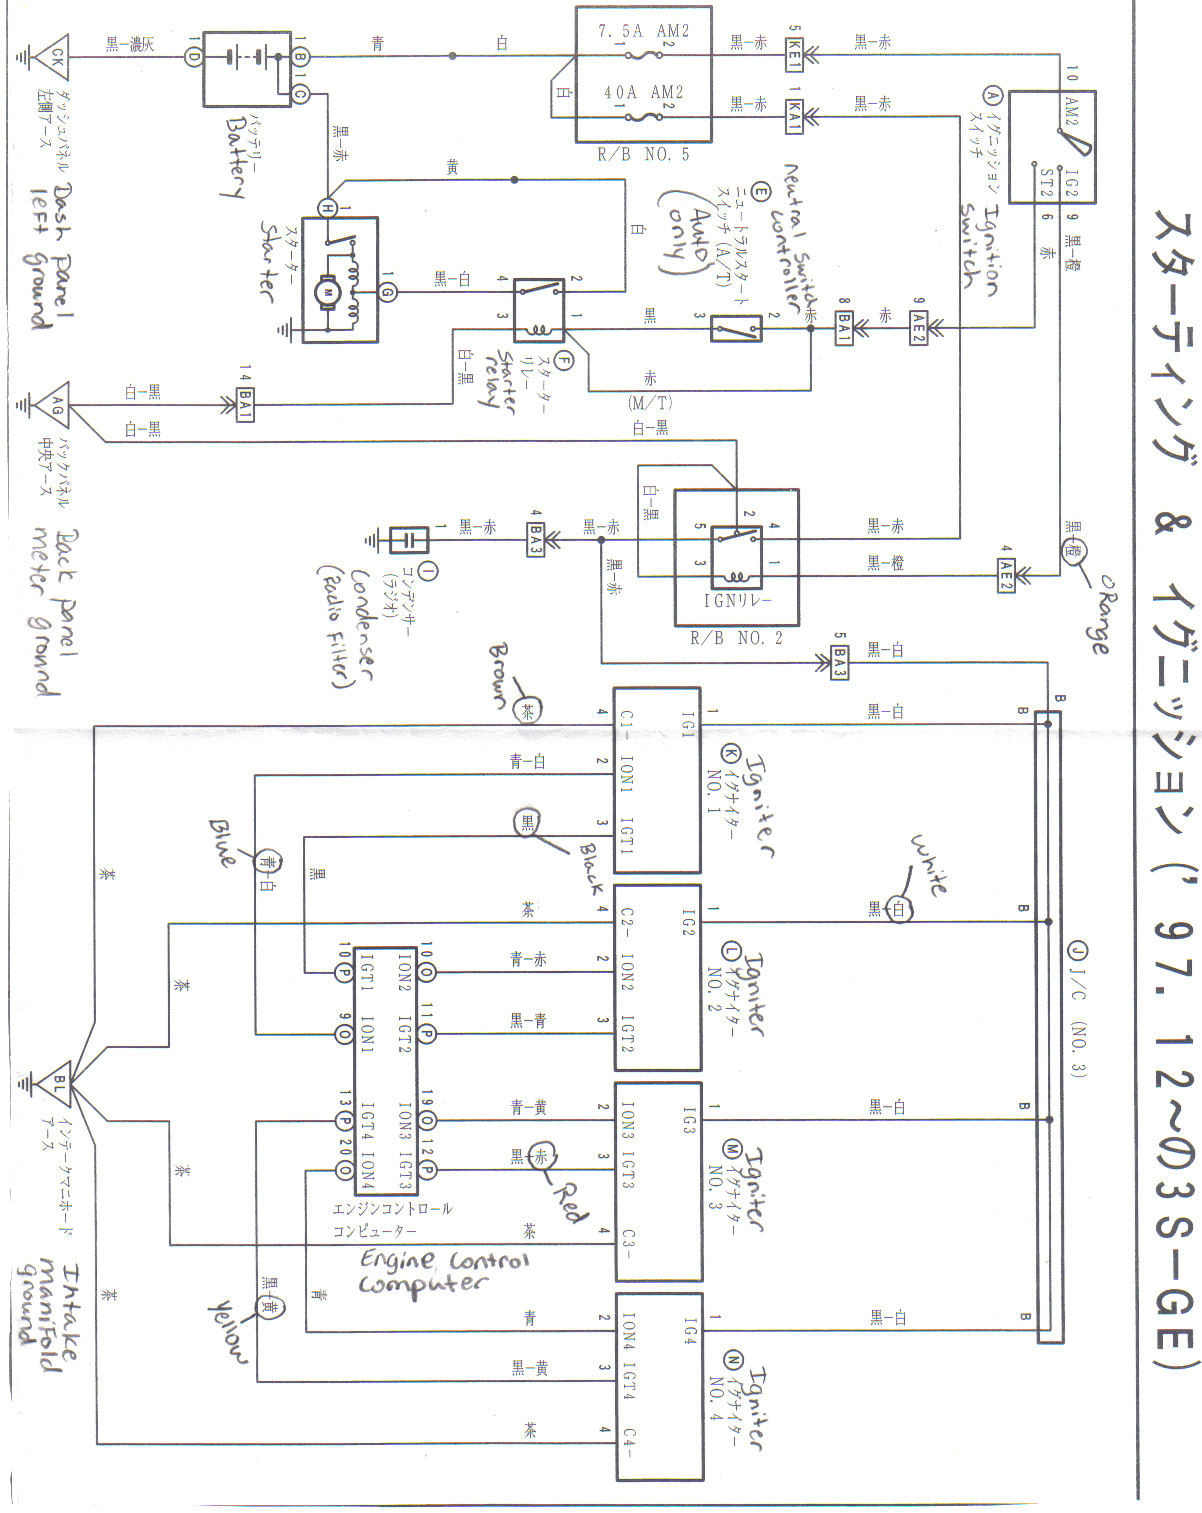 Toyota Mr2 Wiring Diagrams Electrical Wiring – Toyota Mr2 Wiring Diagram